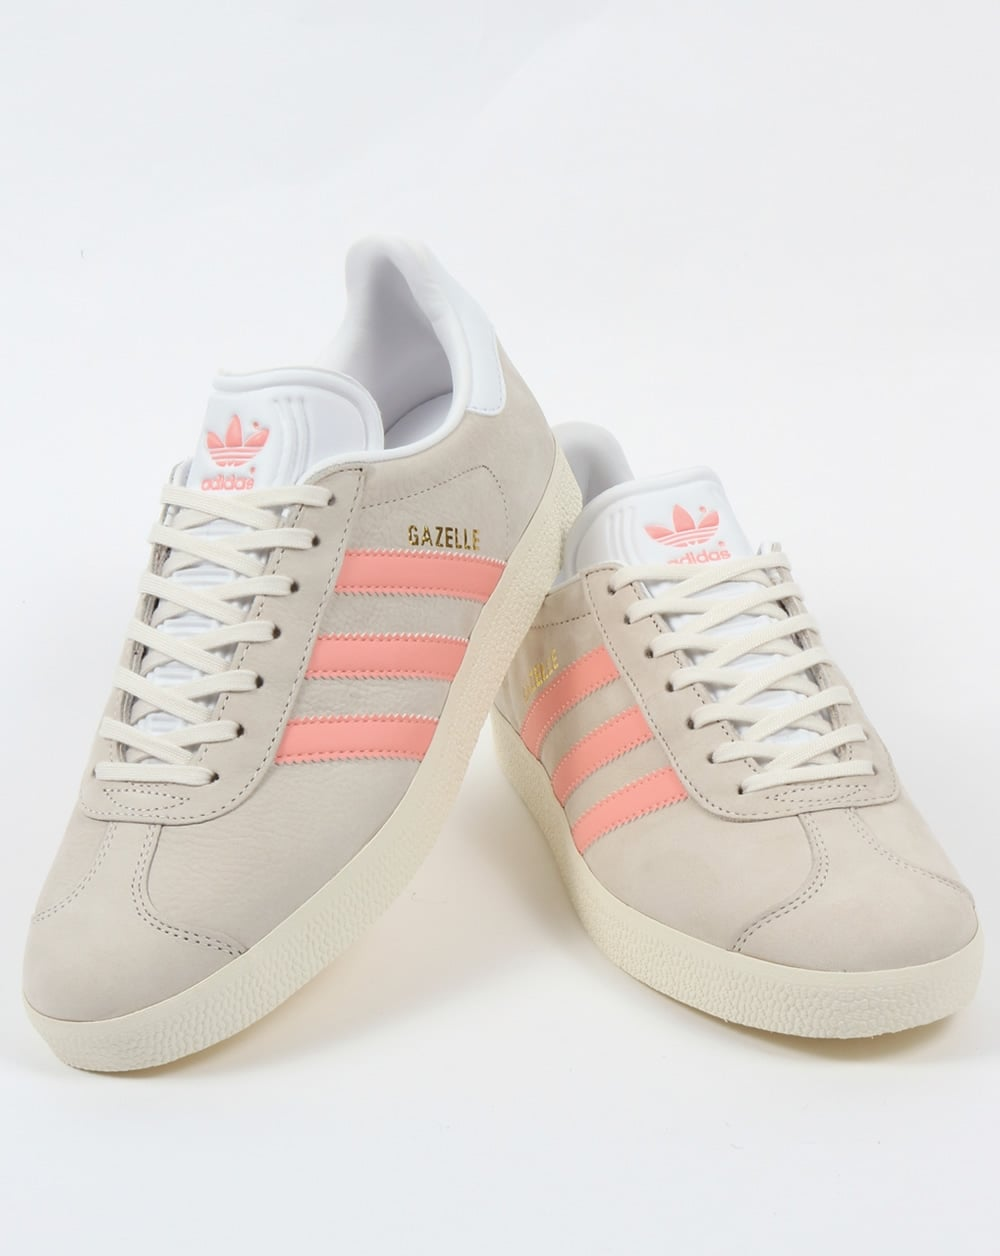 adidas gazelles women grey and pink